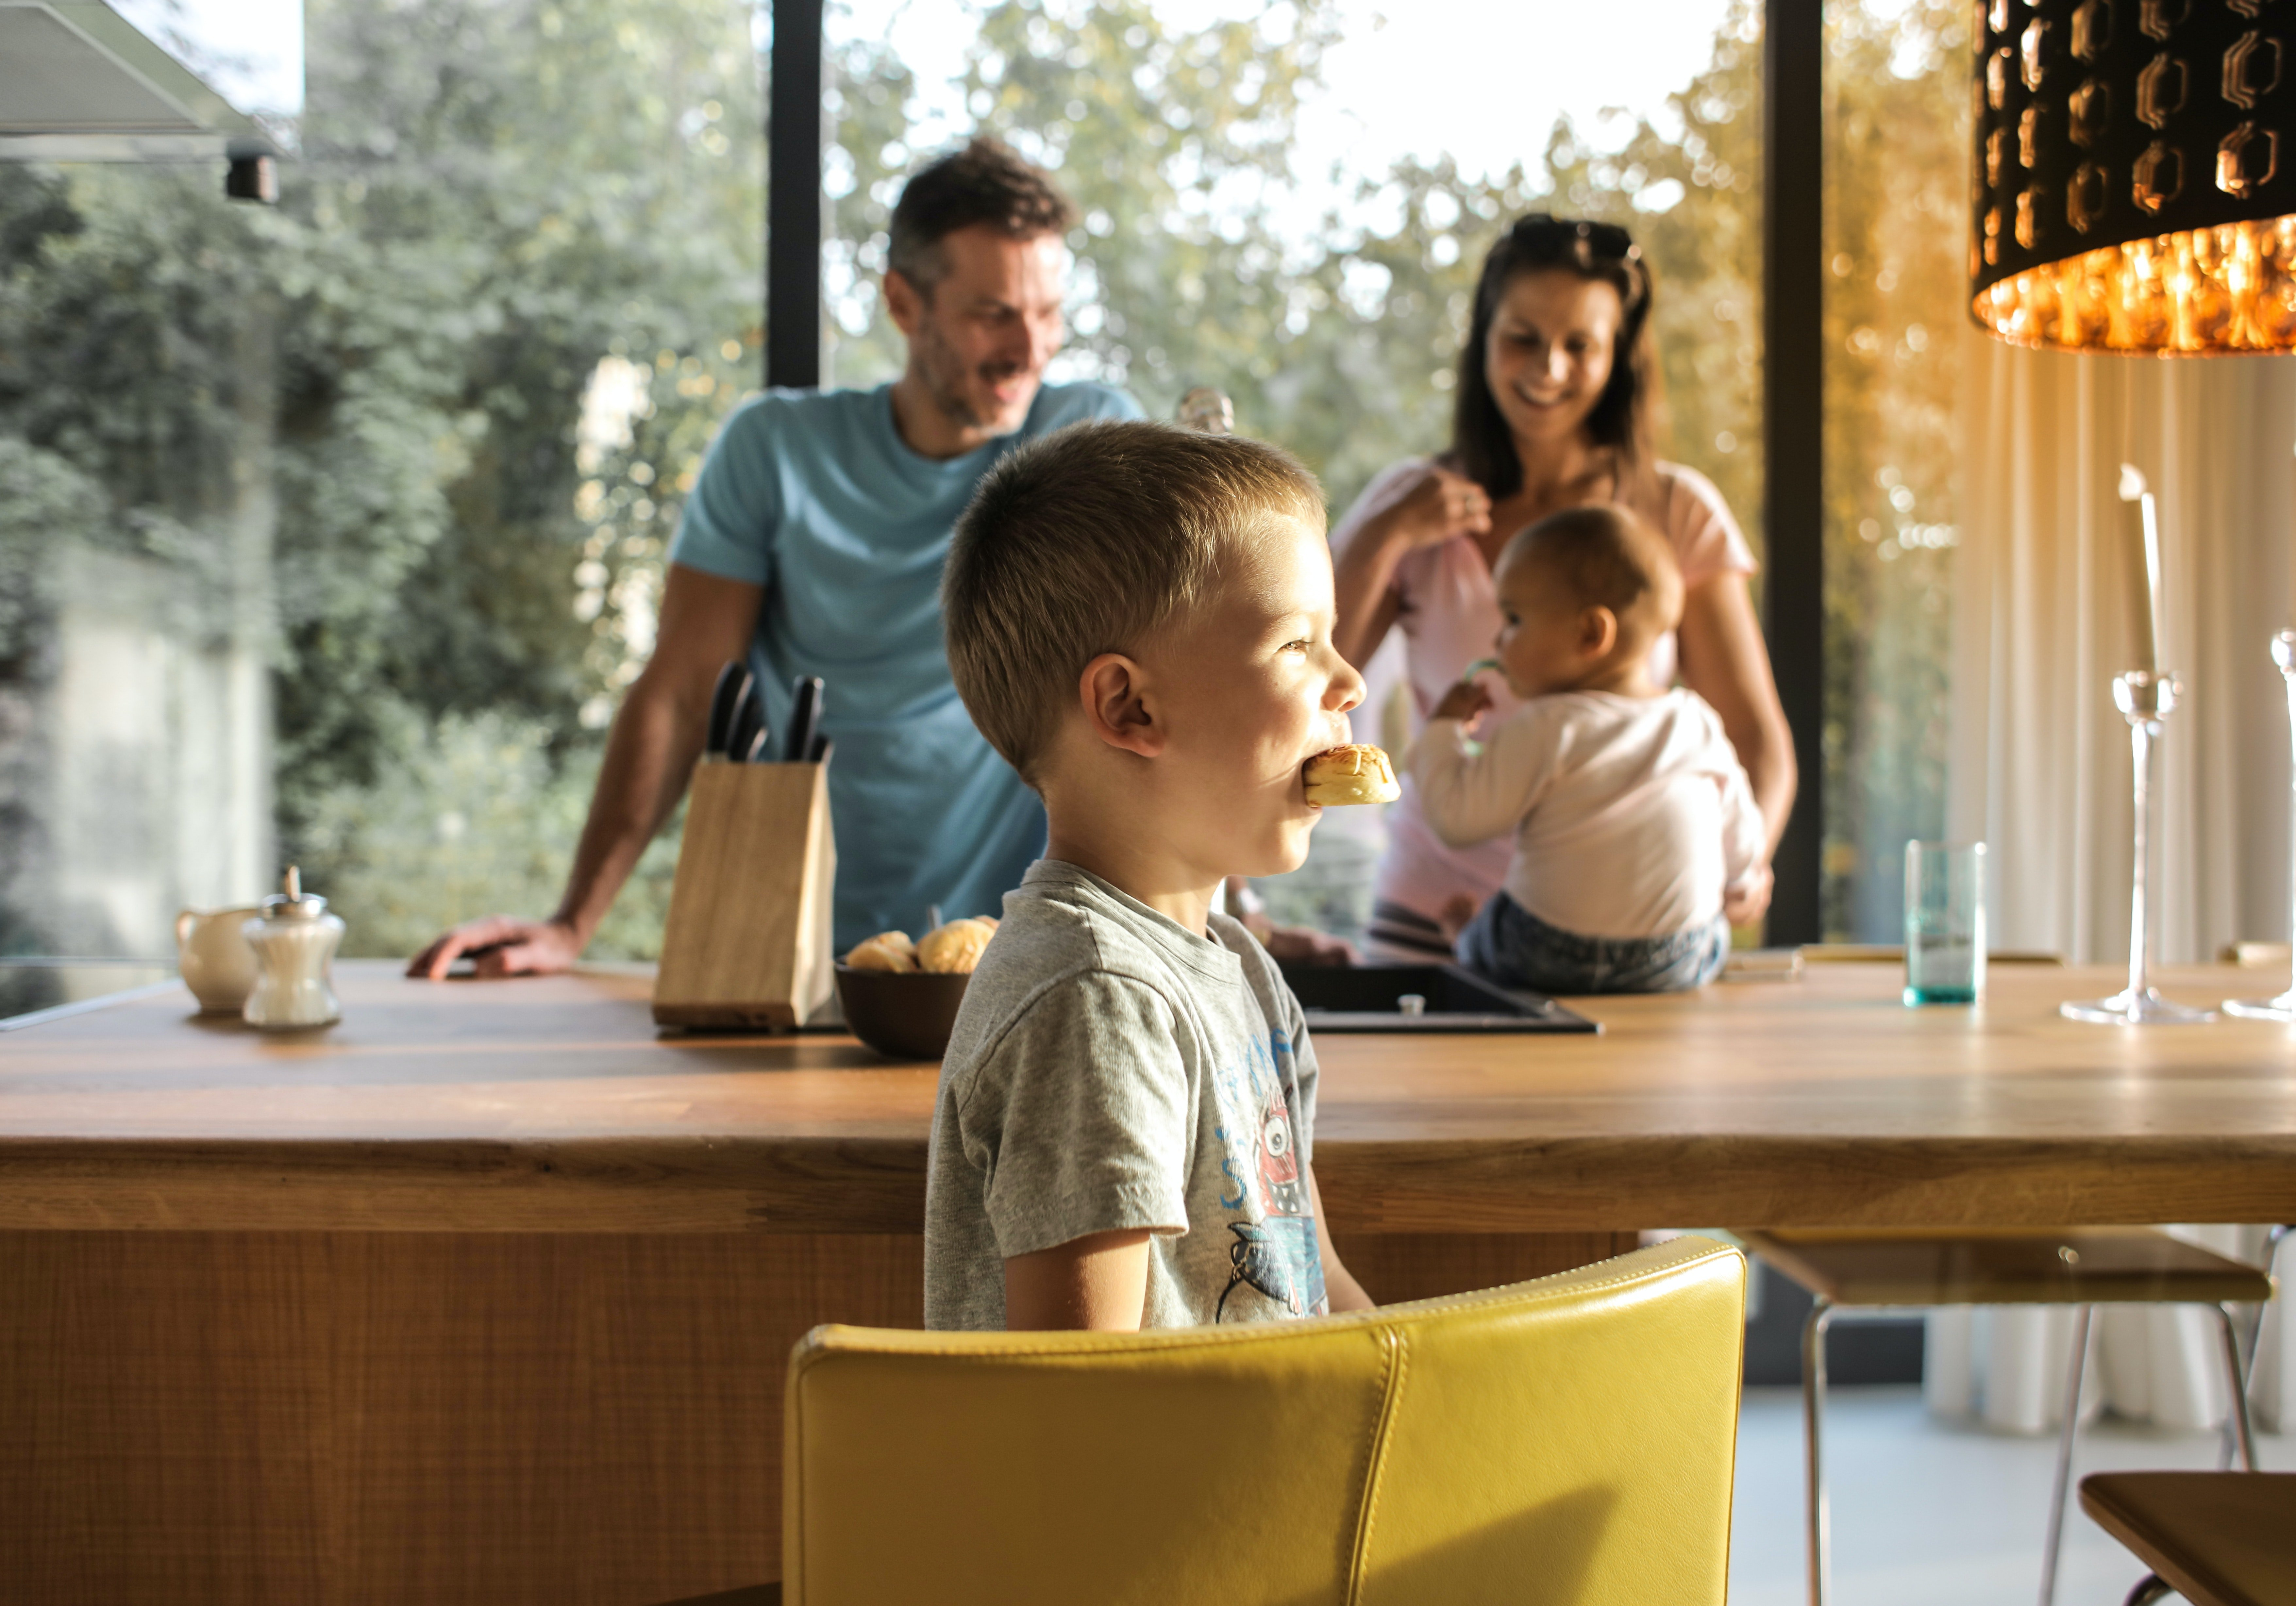 Family dining together | Photo: Pexels